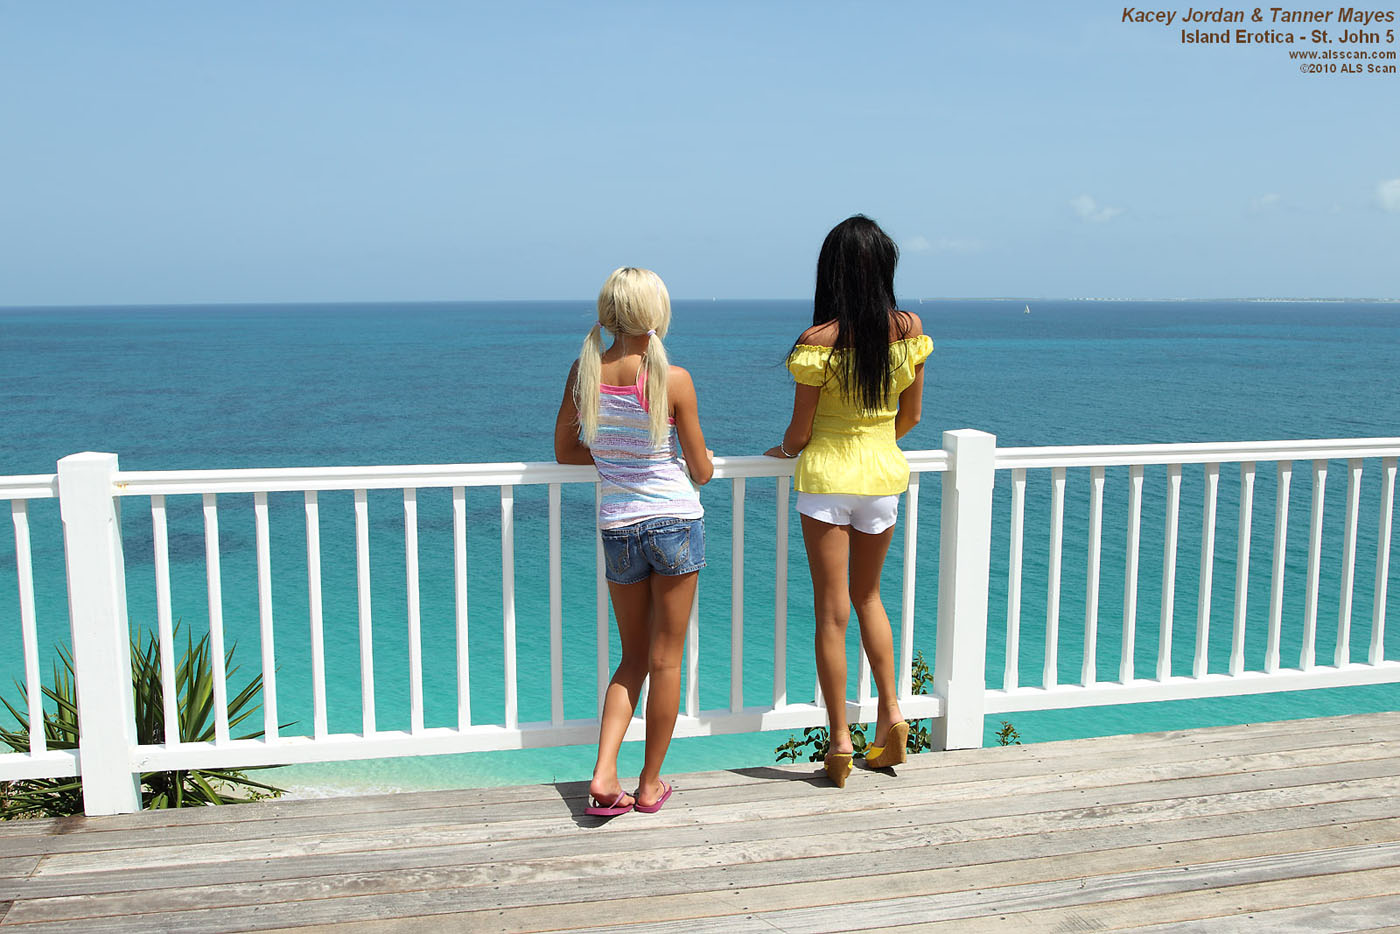 Island Erotica - Lesbian Love in the Caribbean with Tanner Mayes and Kacey Jordan